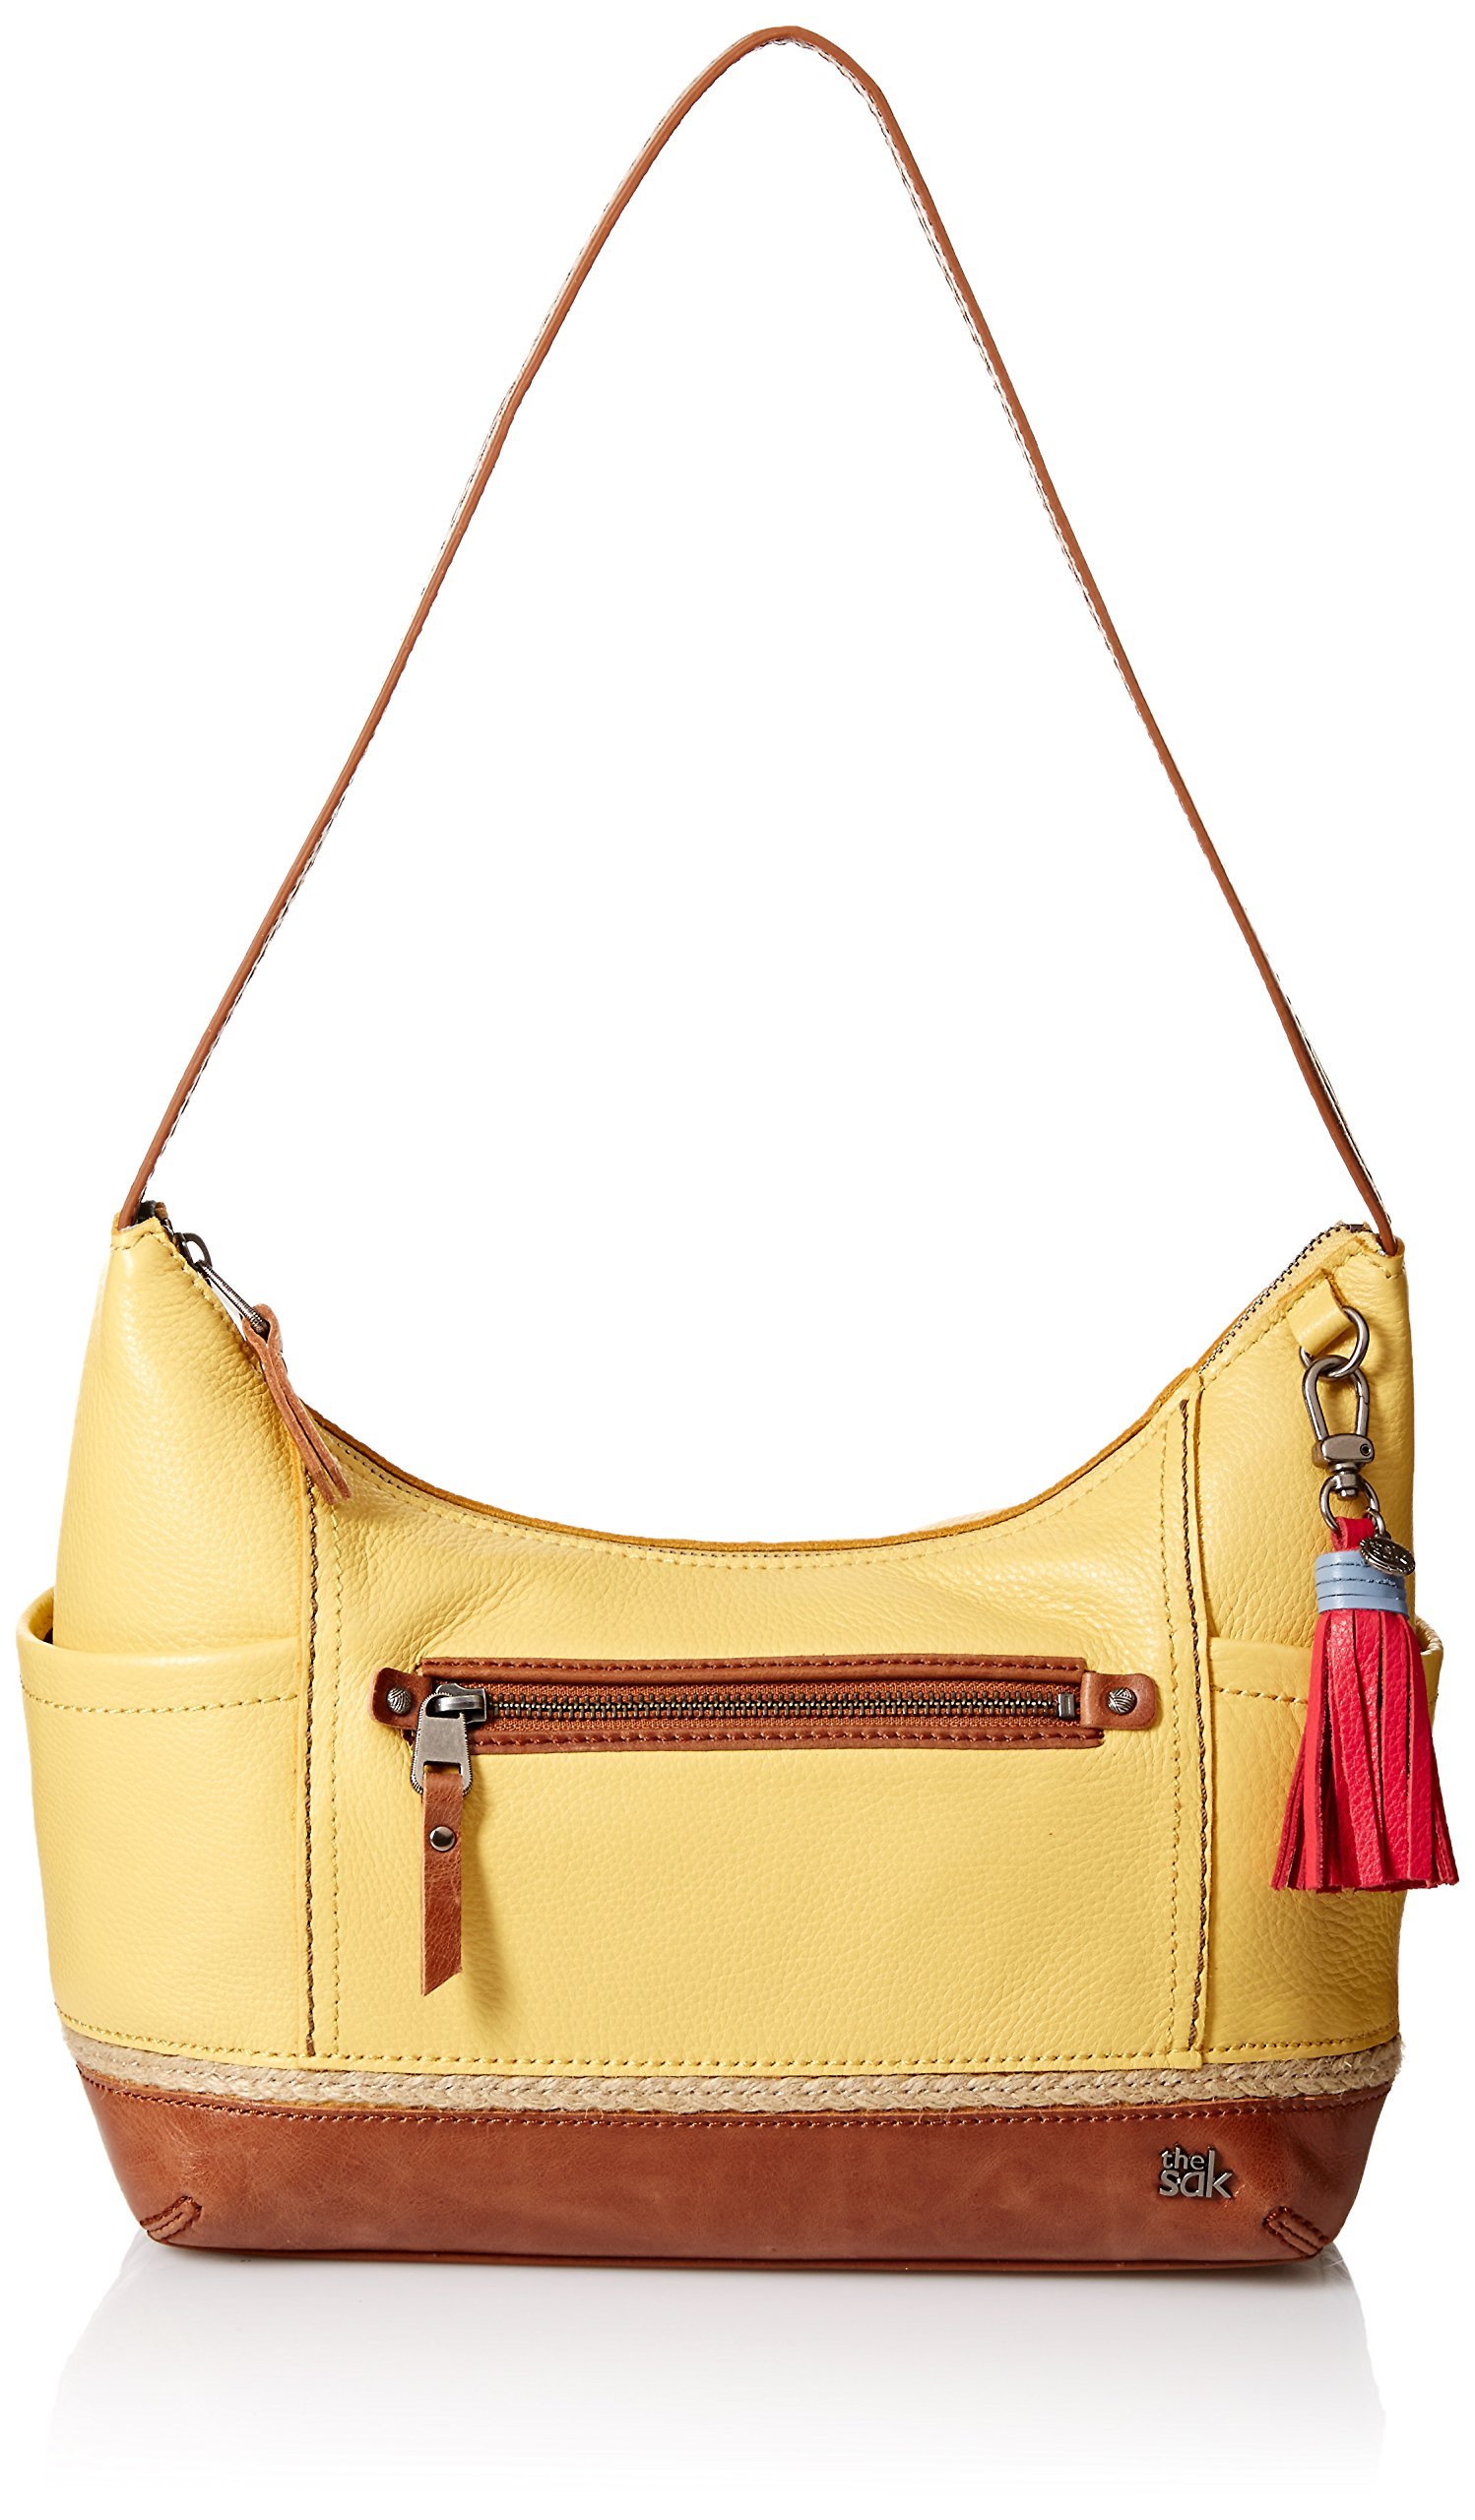 The Sak Kendra Hobo Bag, Sunlight Espadrille by The Sak